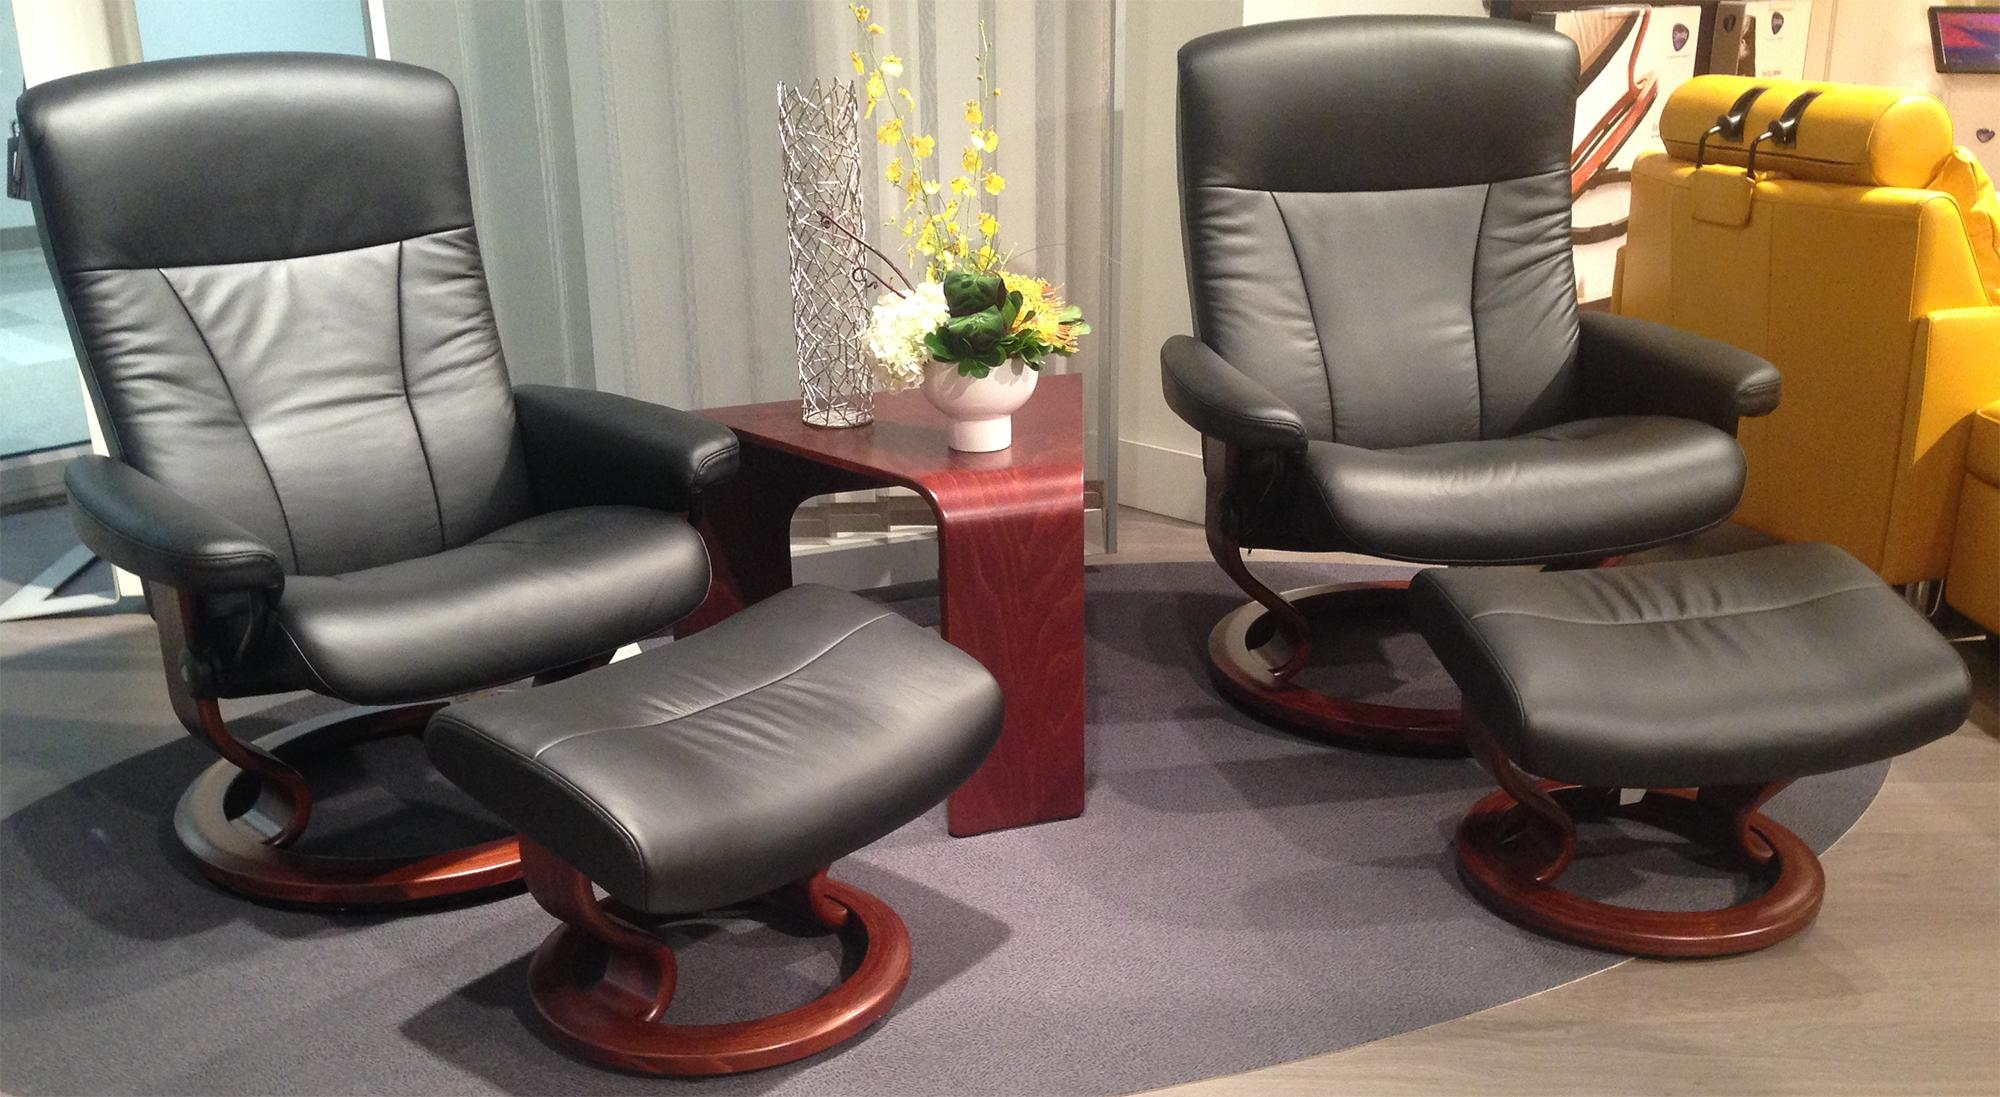 Ekornes Stressless President Large And Medium Recliner Chair Inside Ergonomic Sofas And Chairs (View 6 of 20)